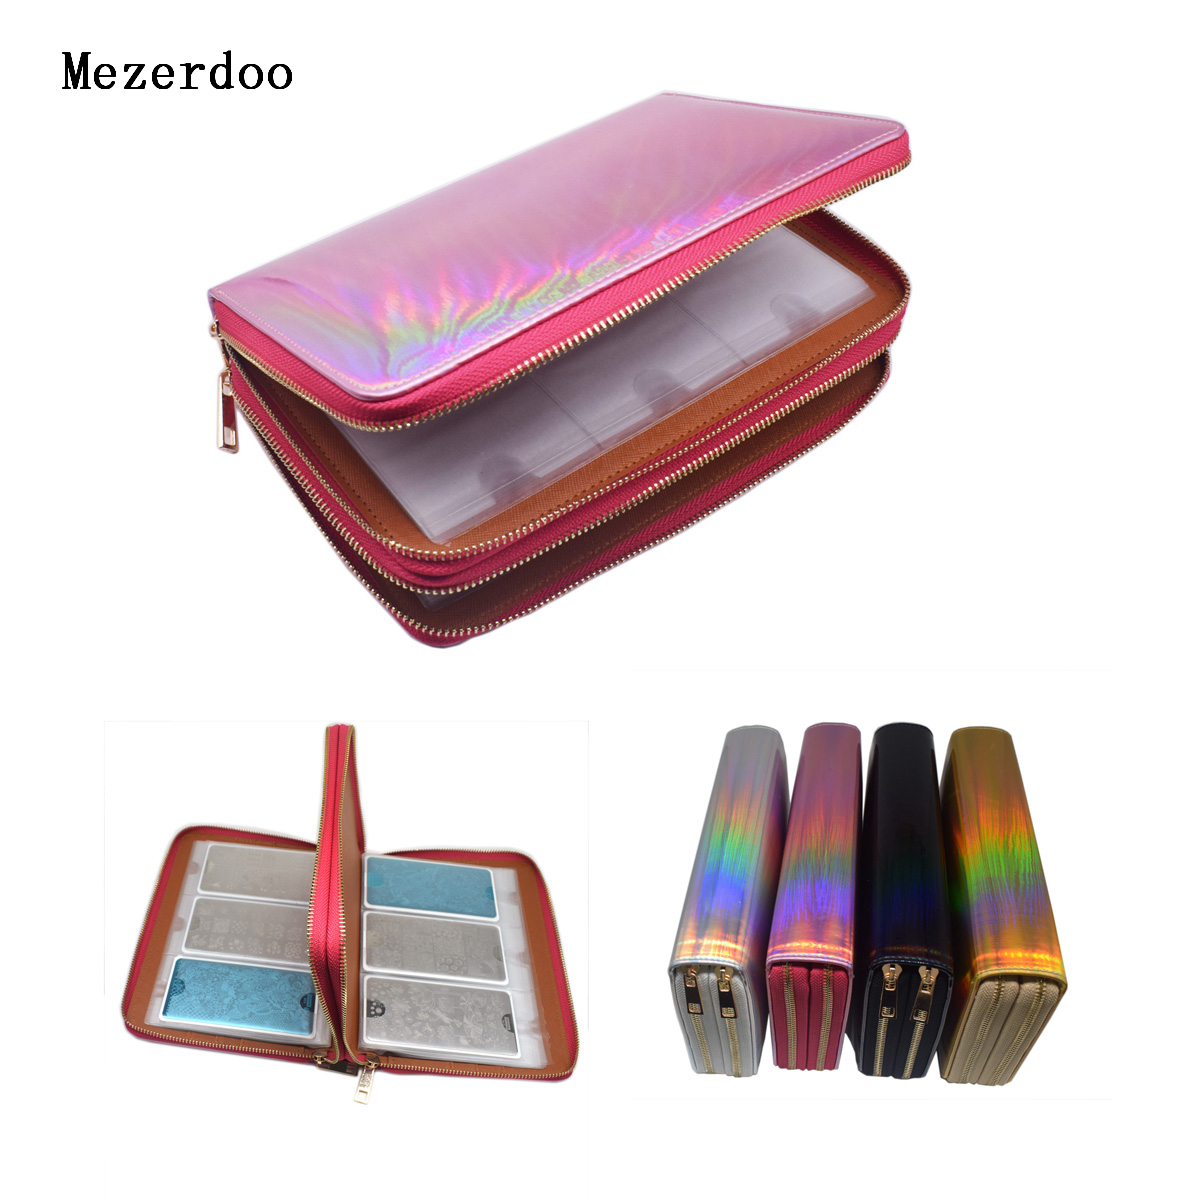 96 Slots Plus Size Nail Art Stamping Plate Holder Laser Rainbow Nail Stamp Polish Rectangle Double Zipper Template Case Bags 10pcs nail art stamping printing skull style stainless steel stamp for diy manicure template stencils jh461 10pcs